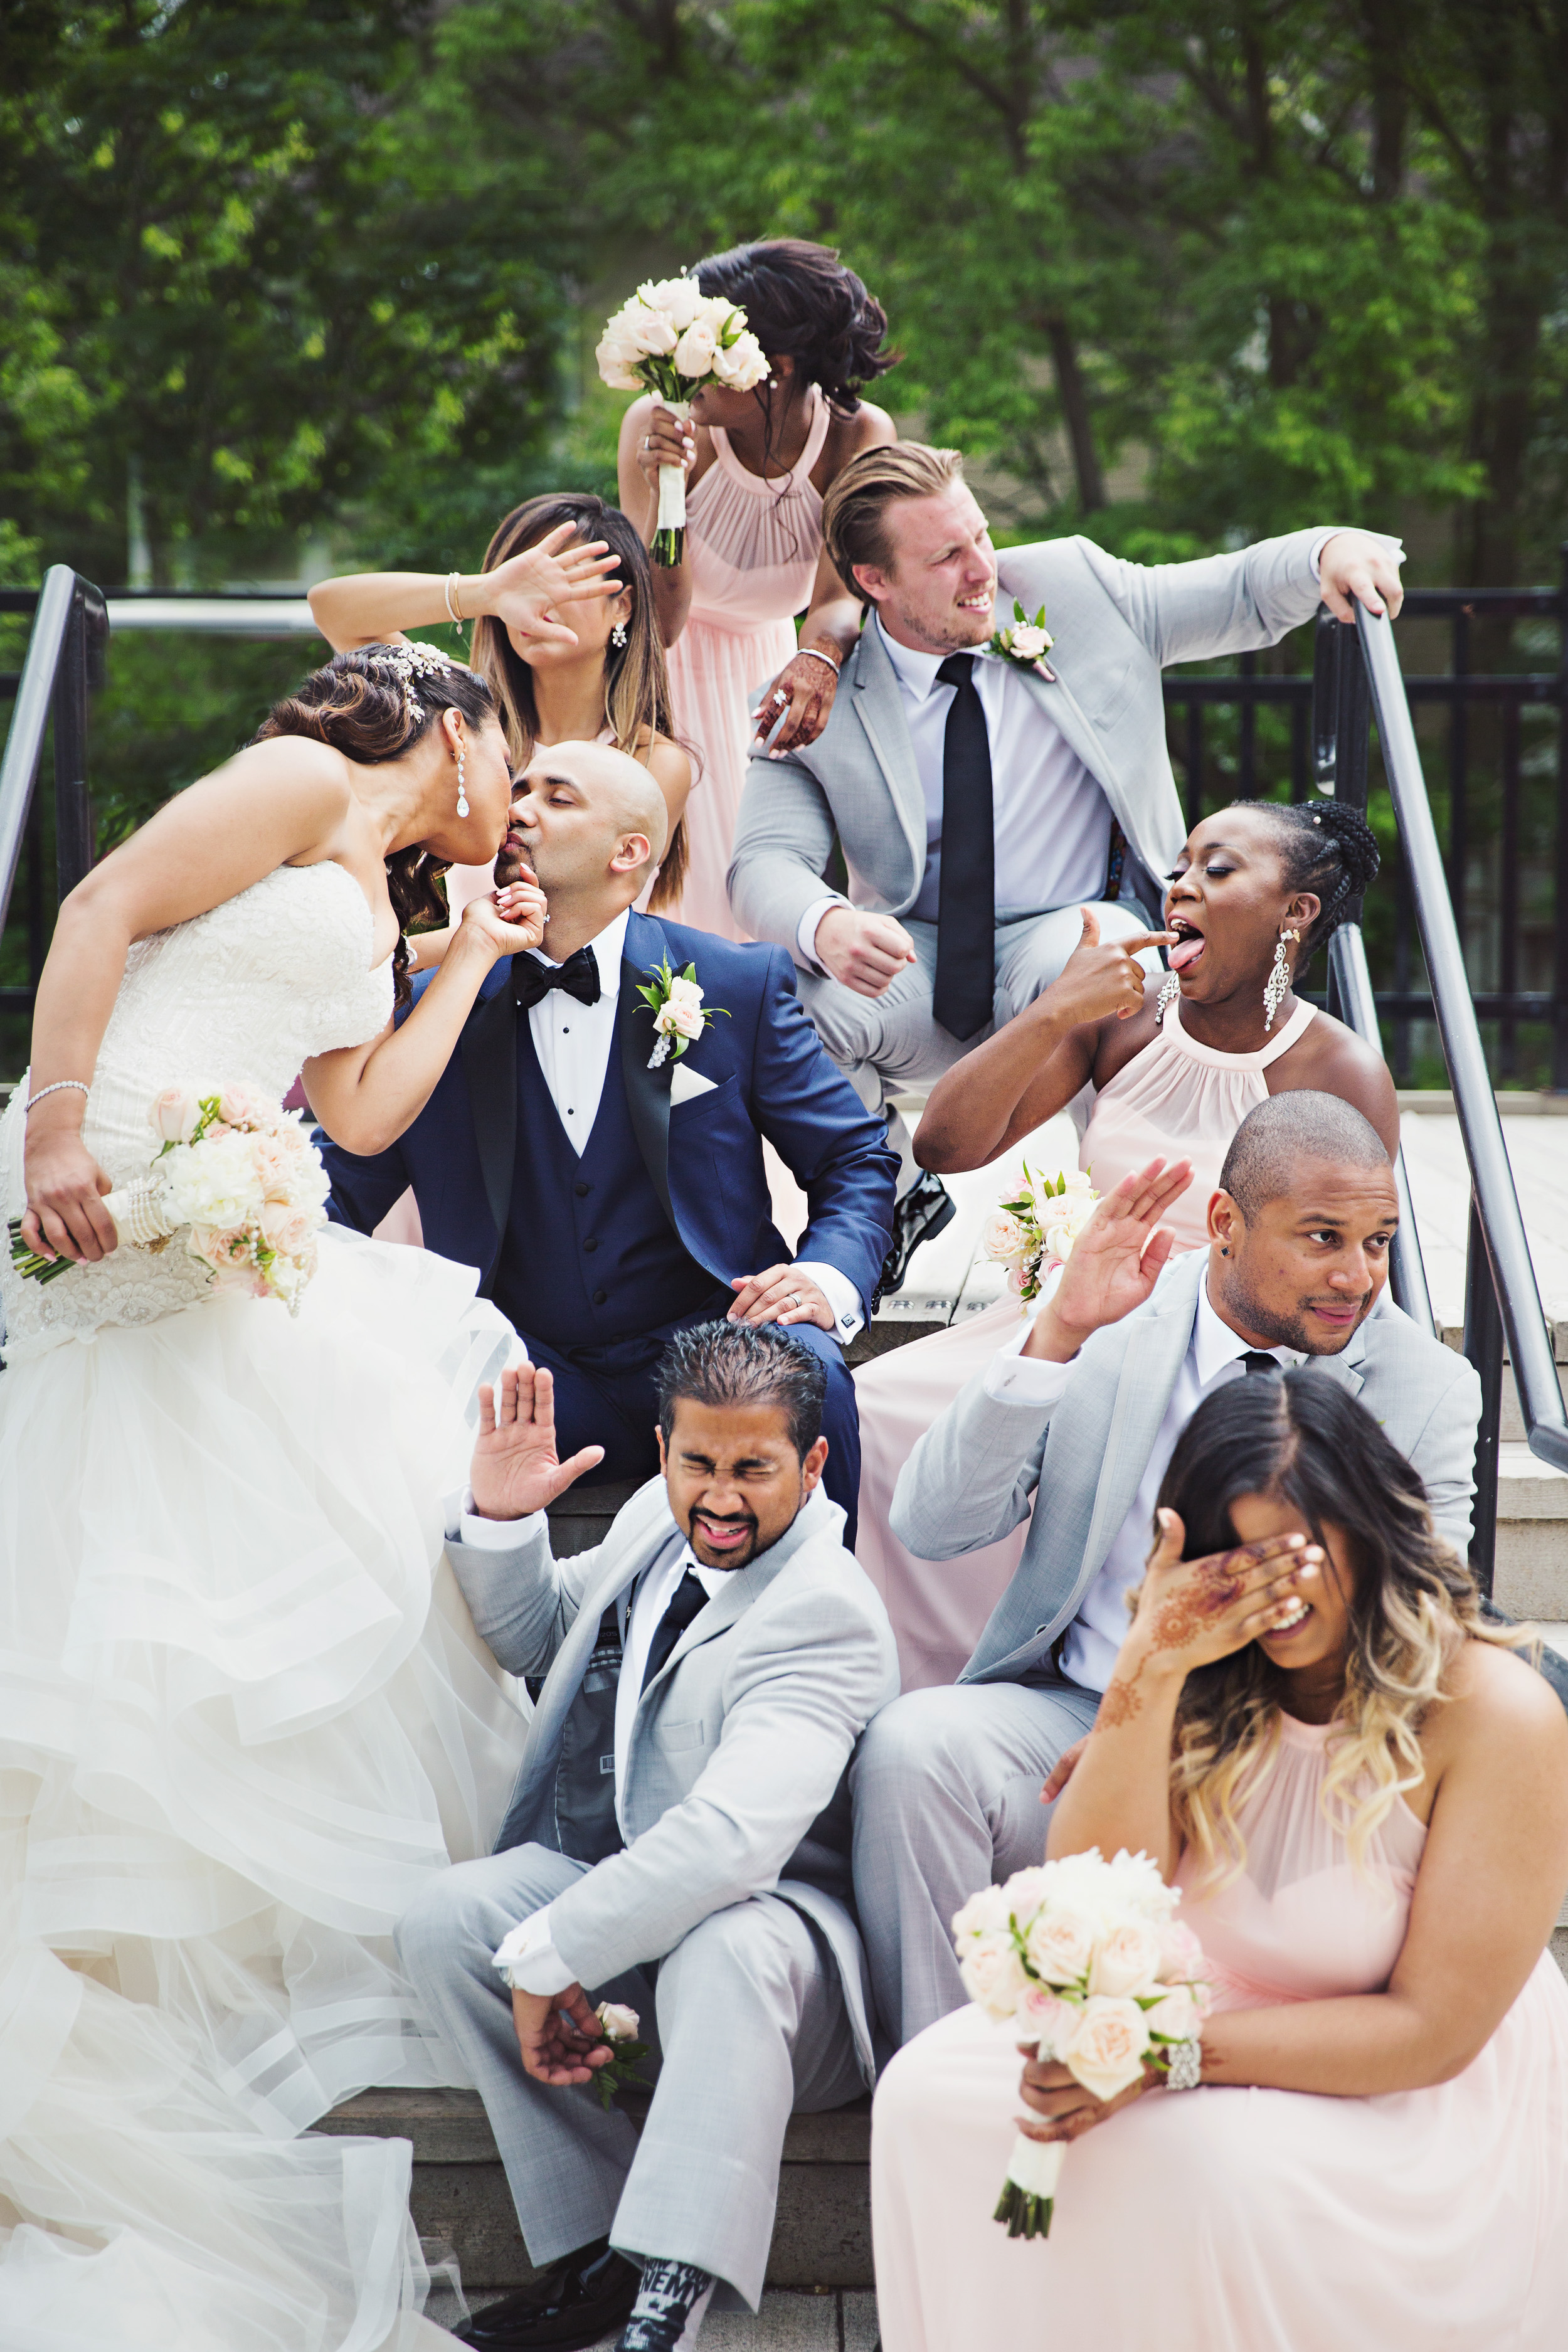 Seriously – our favourite type of wedding party photo. The REAL kind!